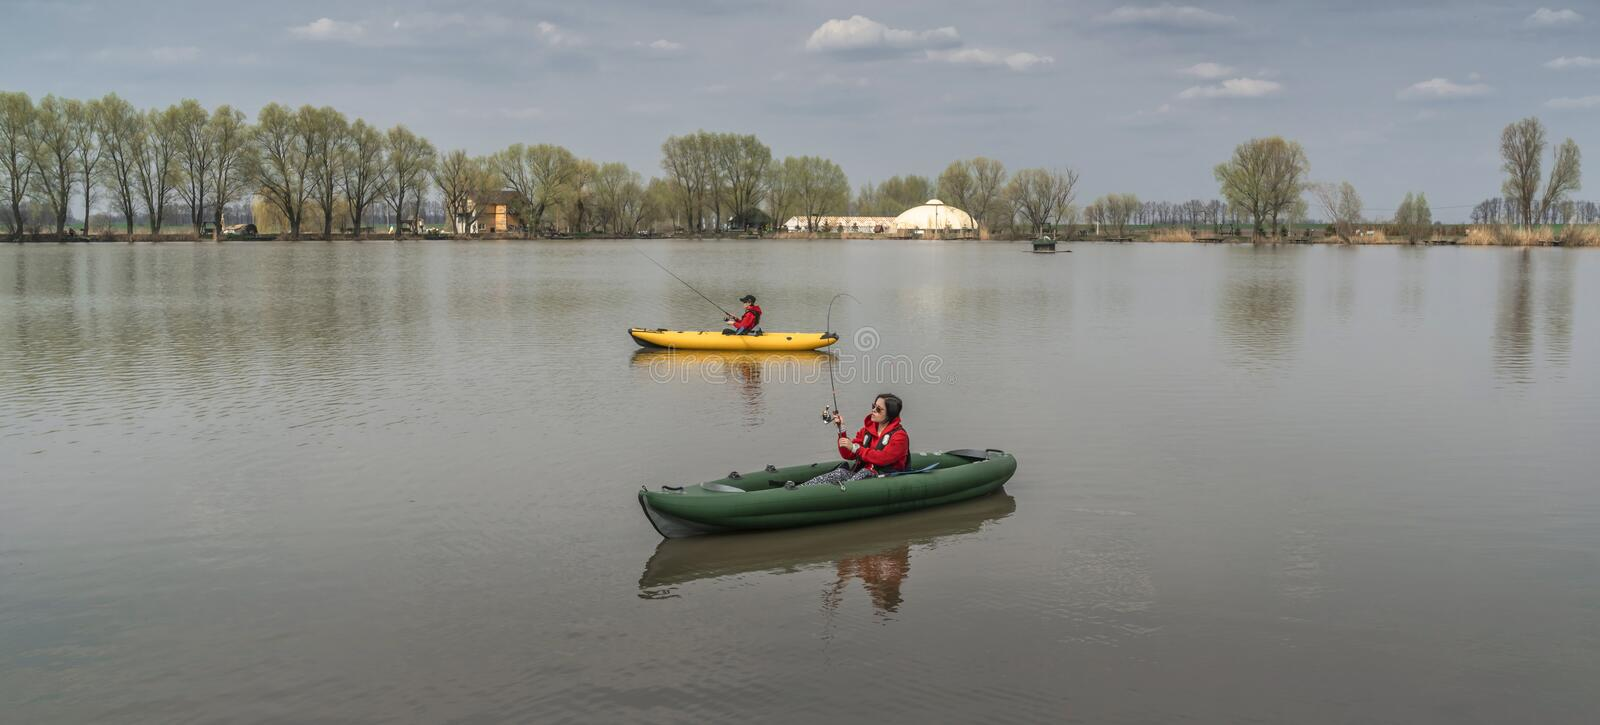 Kayak fishing at lake. Two fisherwomen on inflatable boats with fishing tackle stock images